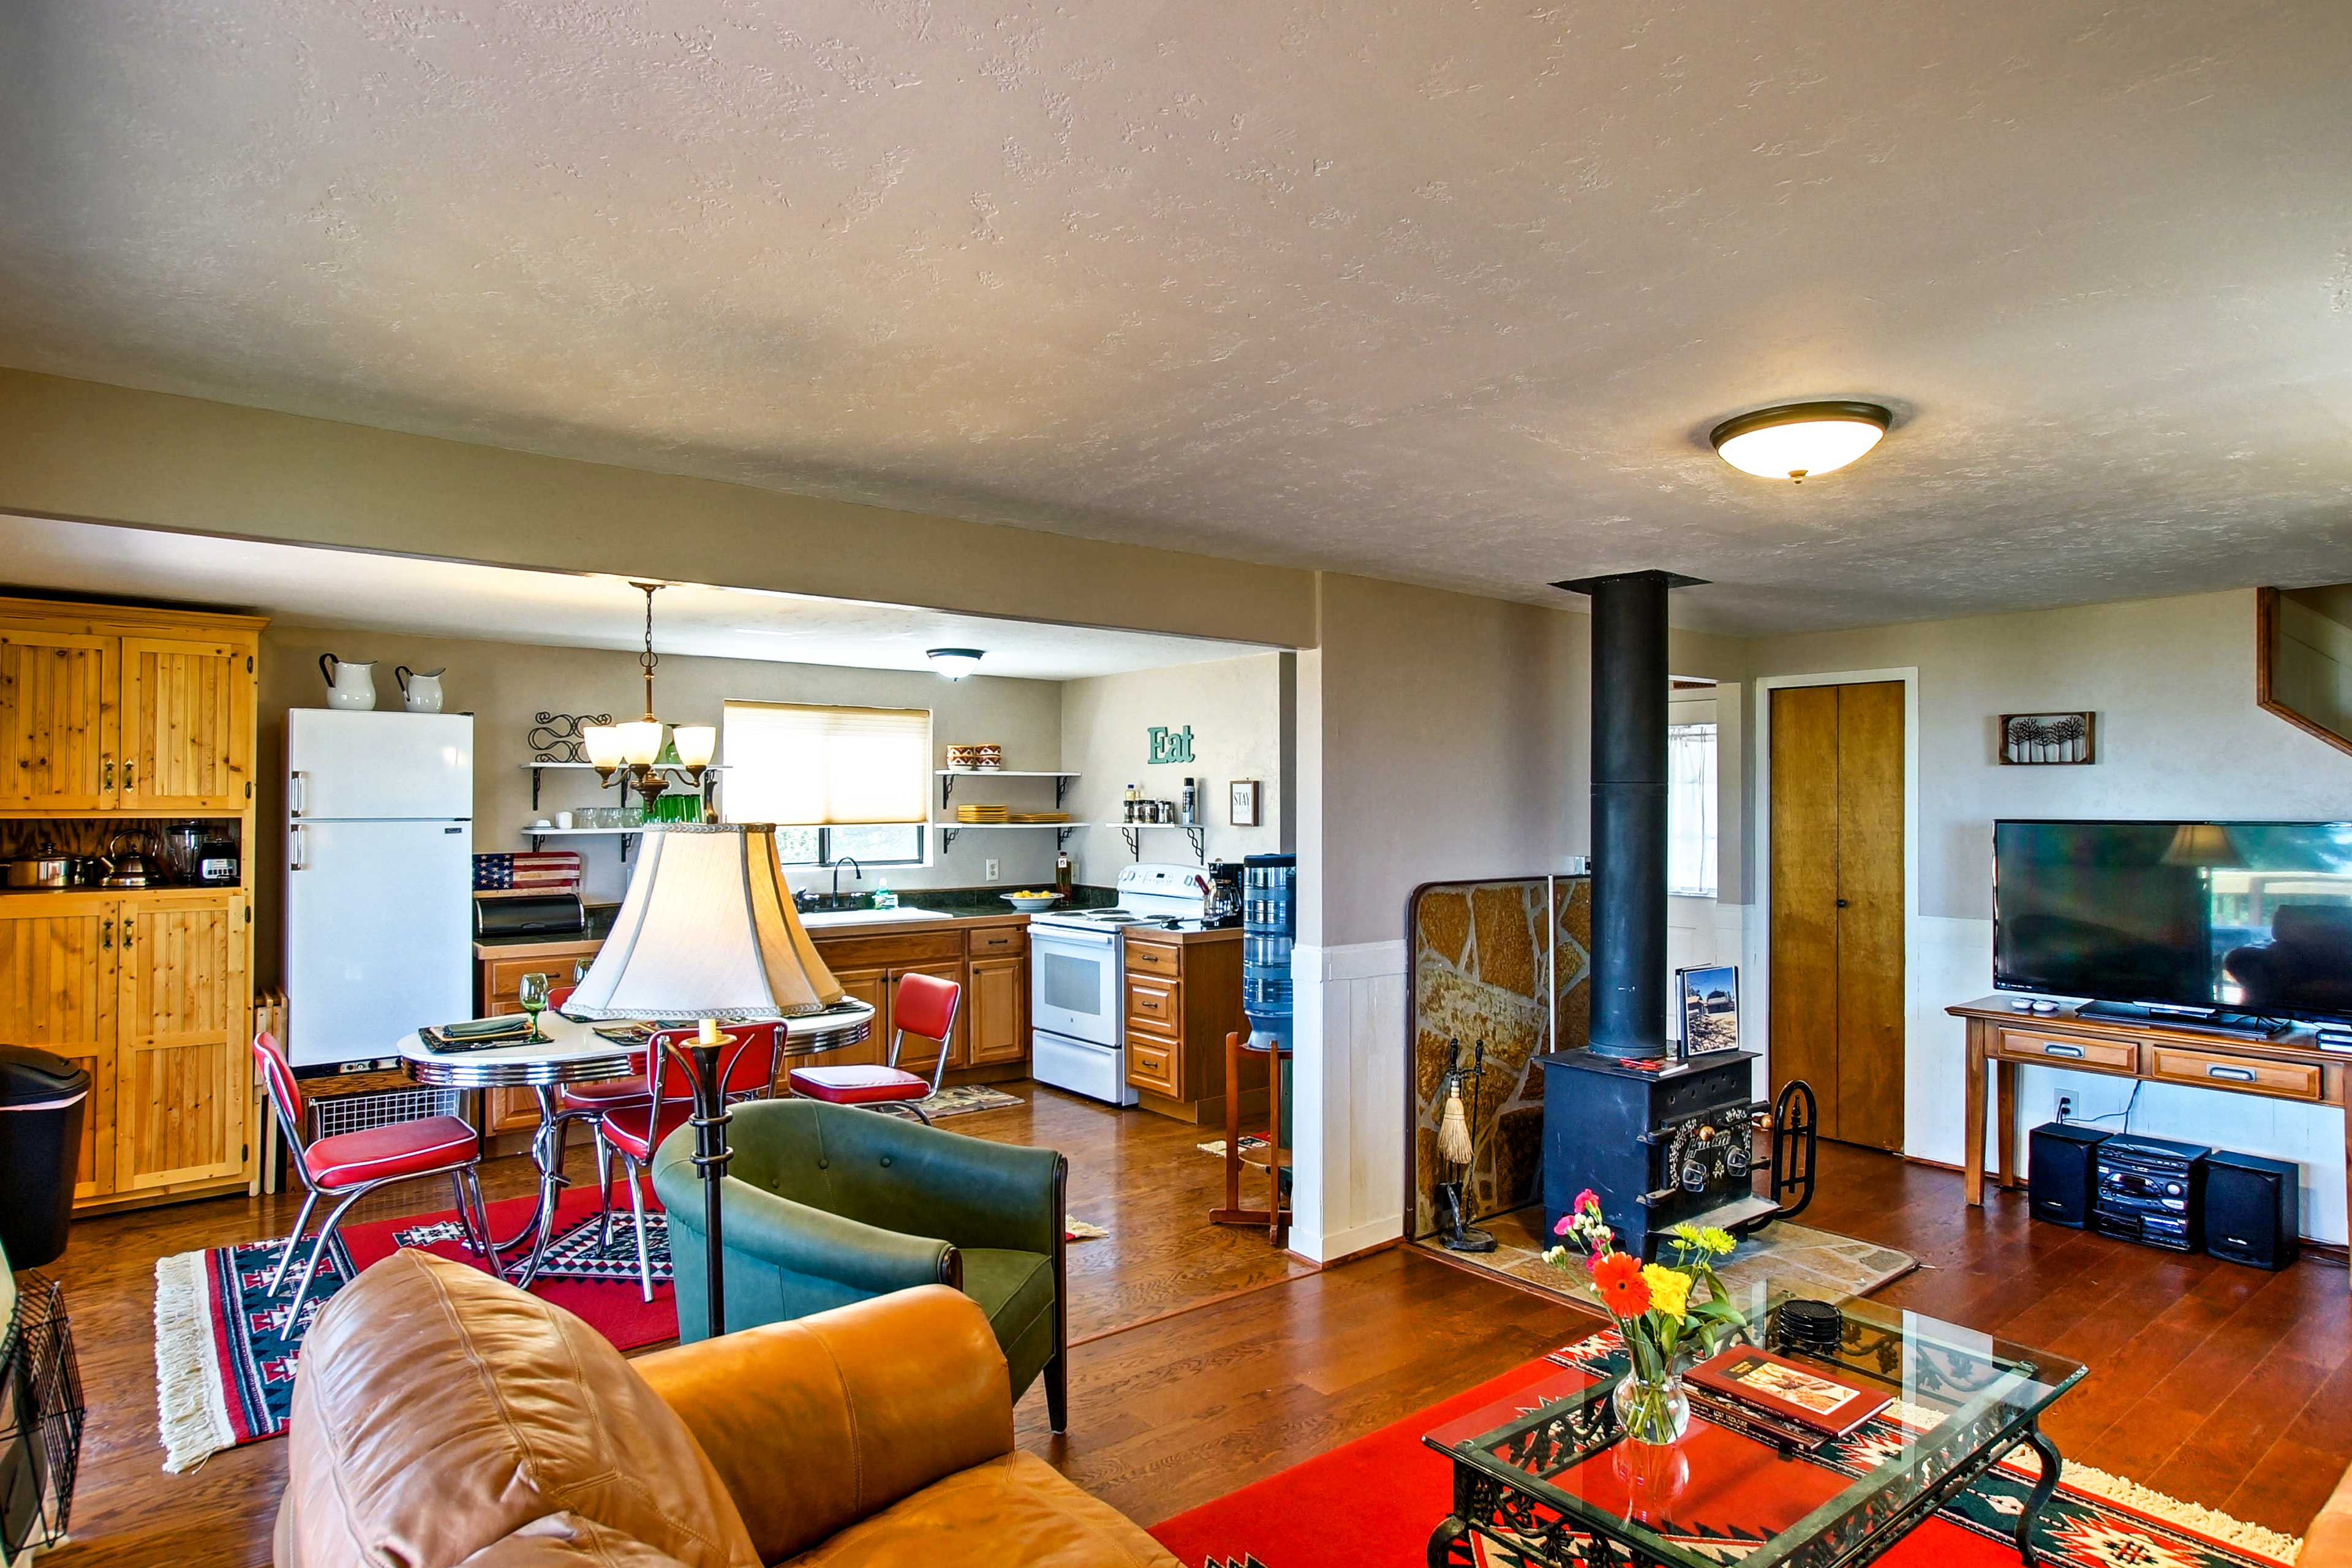 The open floor plan allows room for everyone in the group to sprawl out.